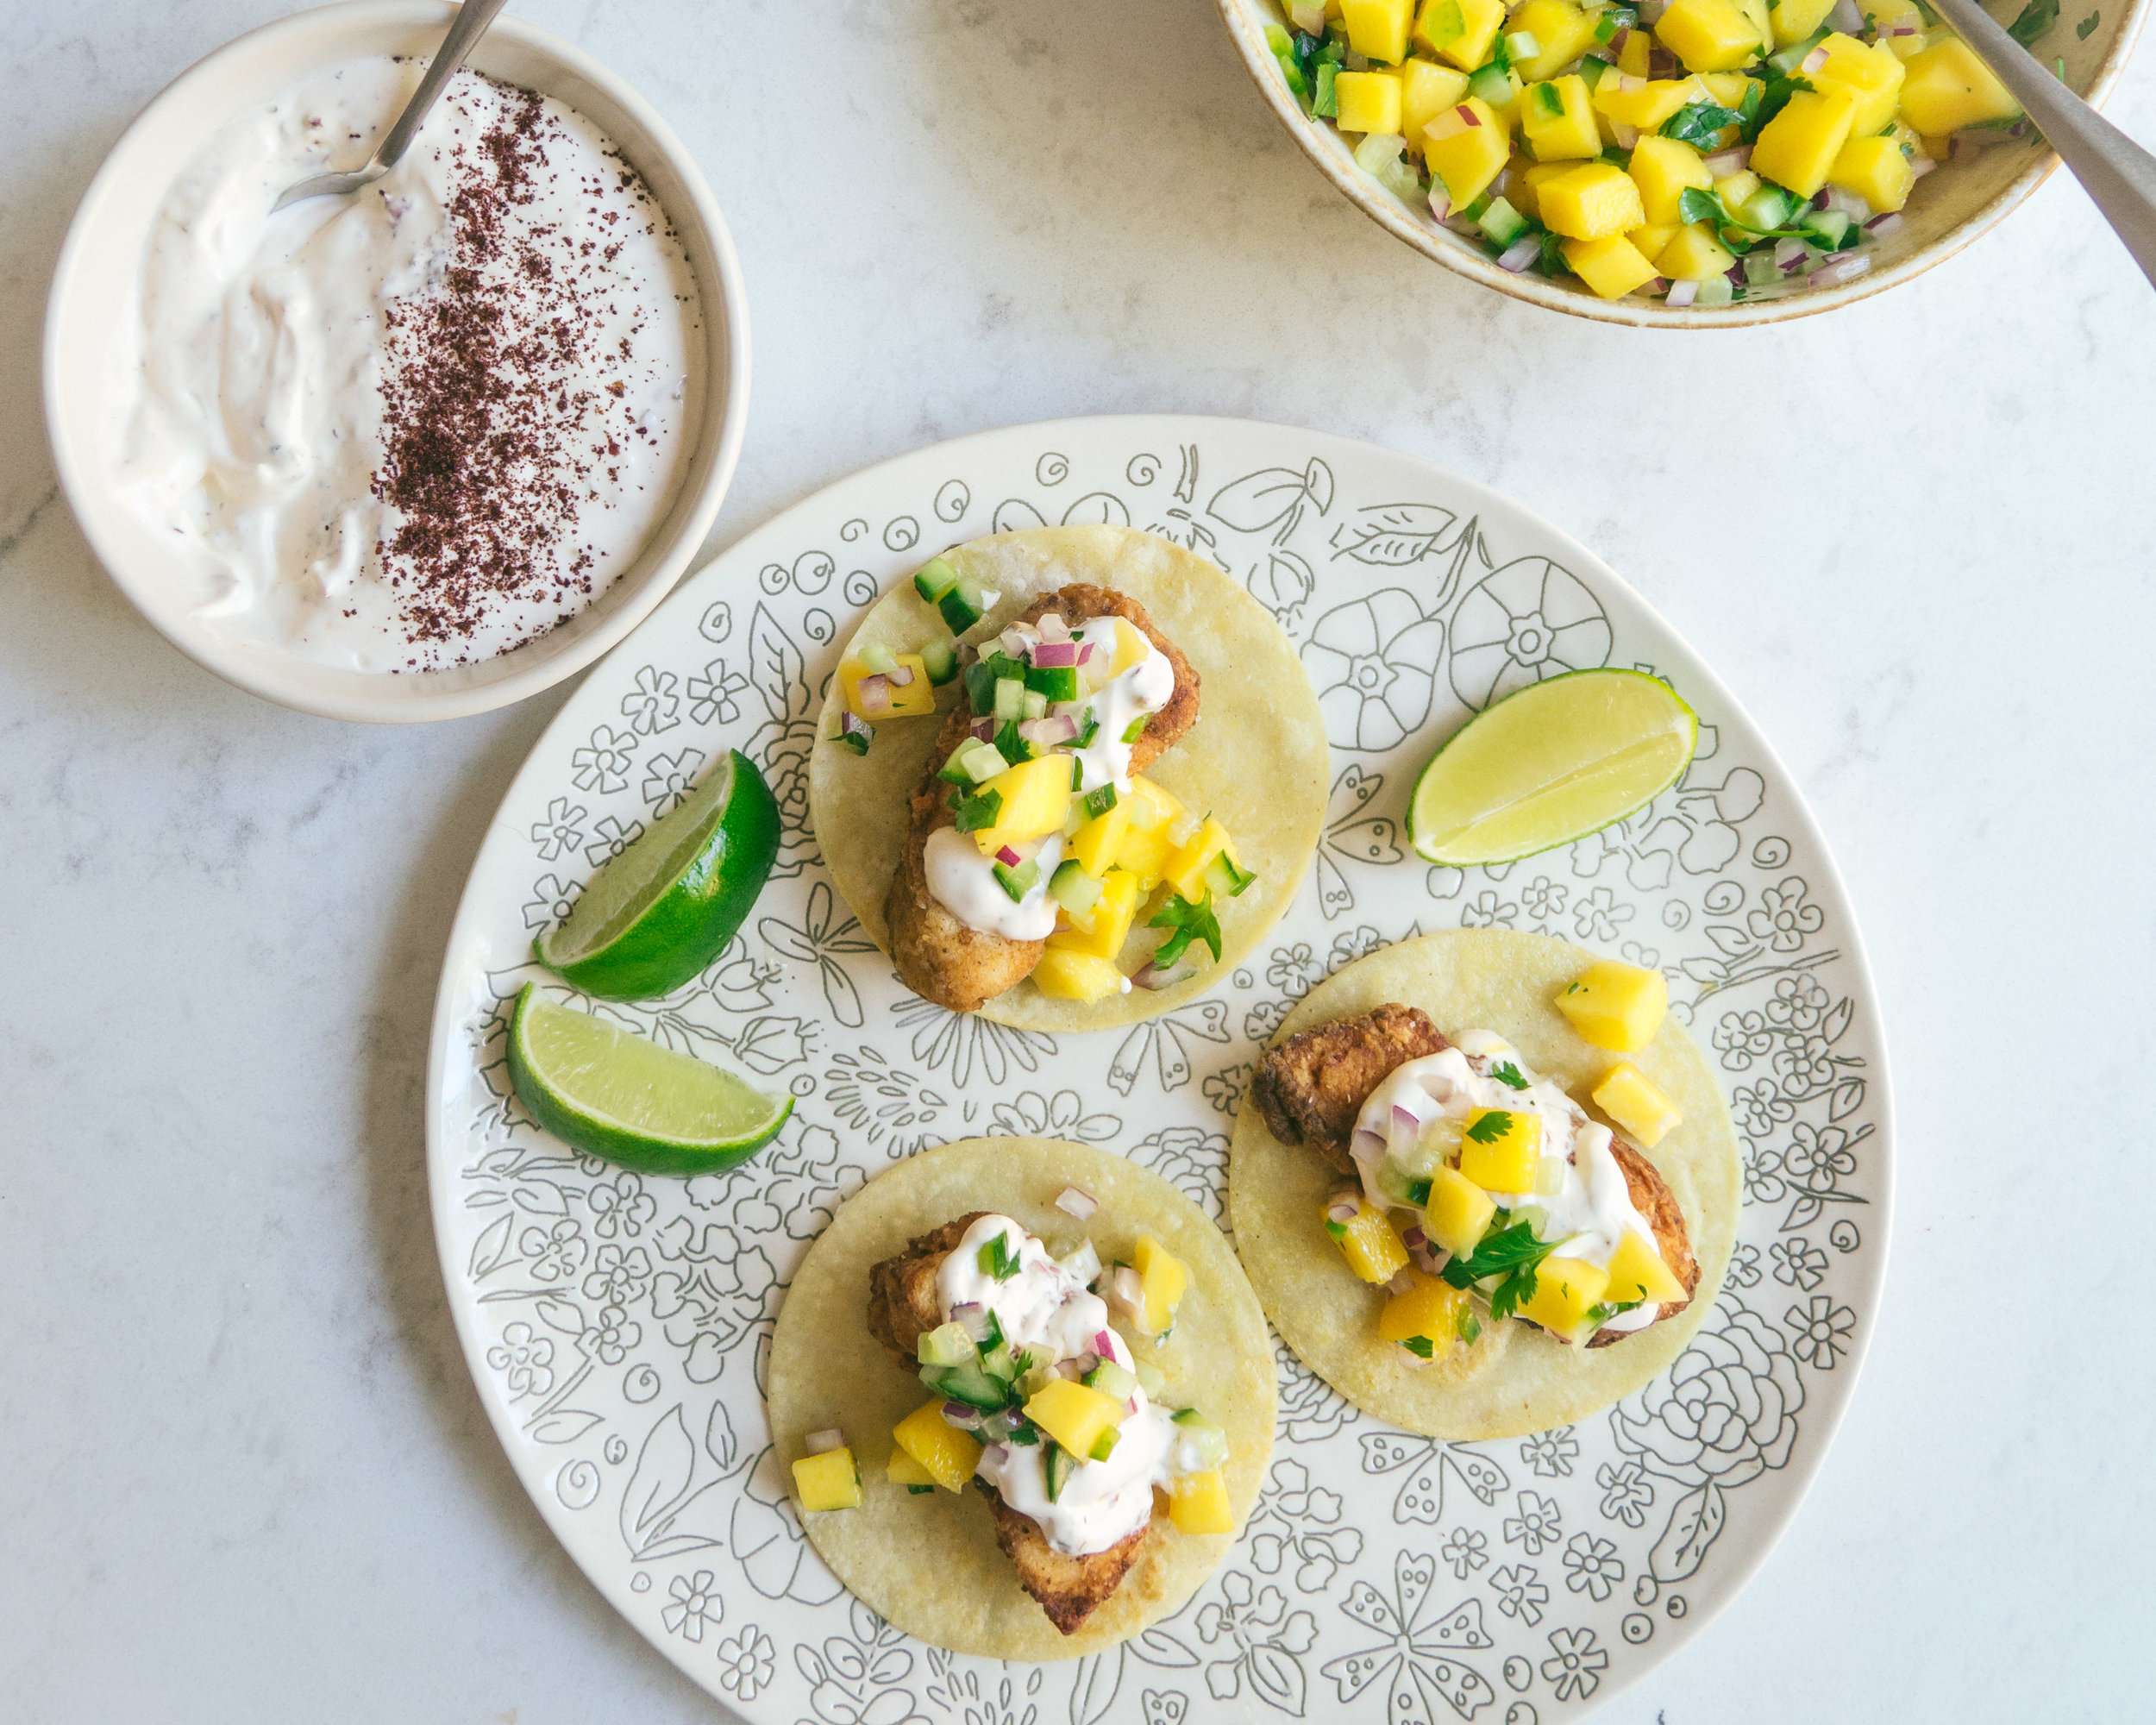 Fish Tacos with Chipotle Crema and Mango Salsa